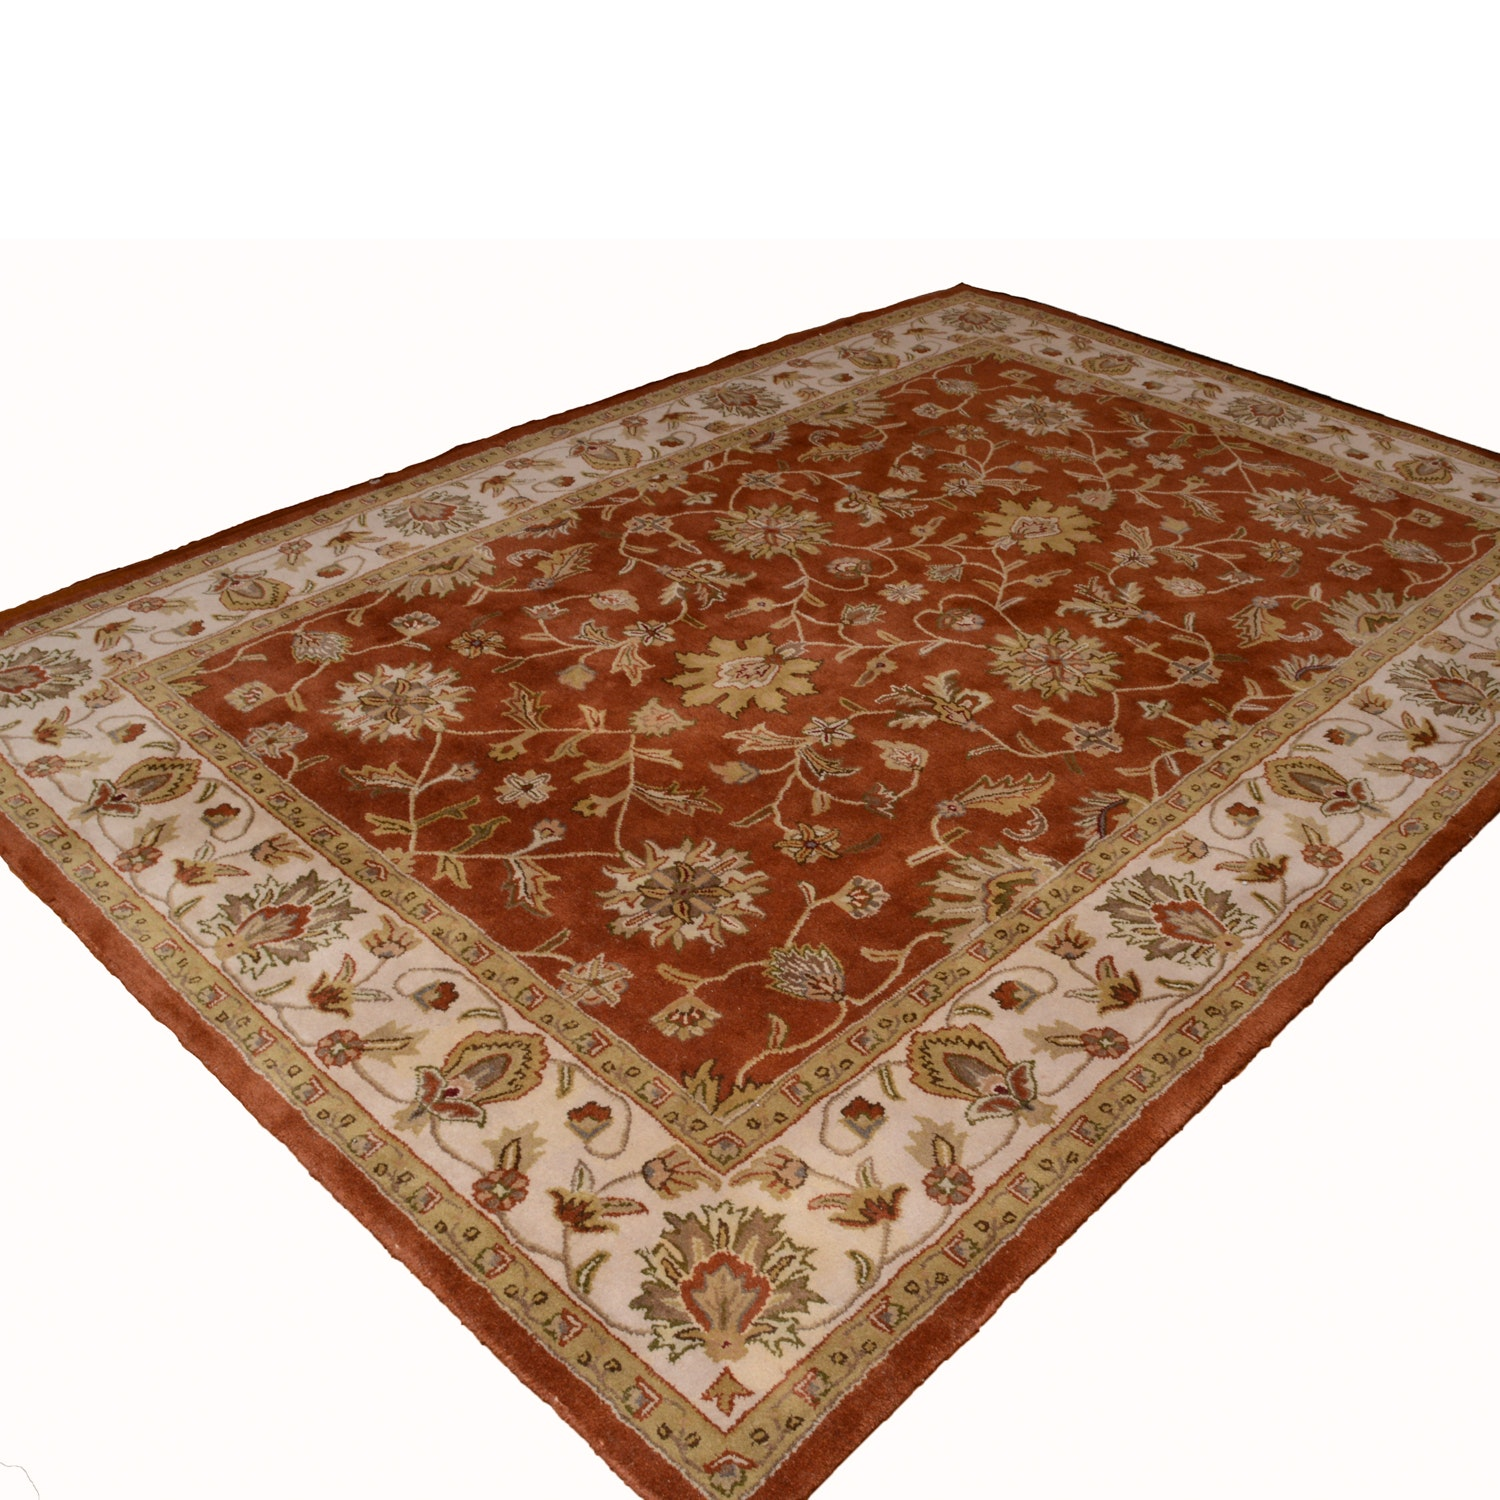 Hand-Tufted Wool Area Rug by Artistic Weavers